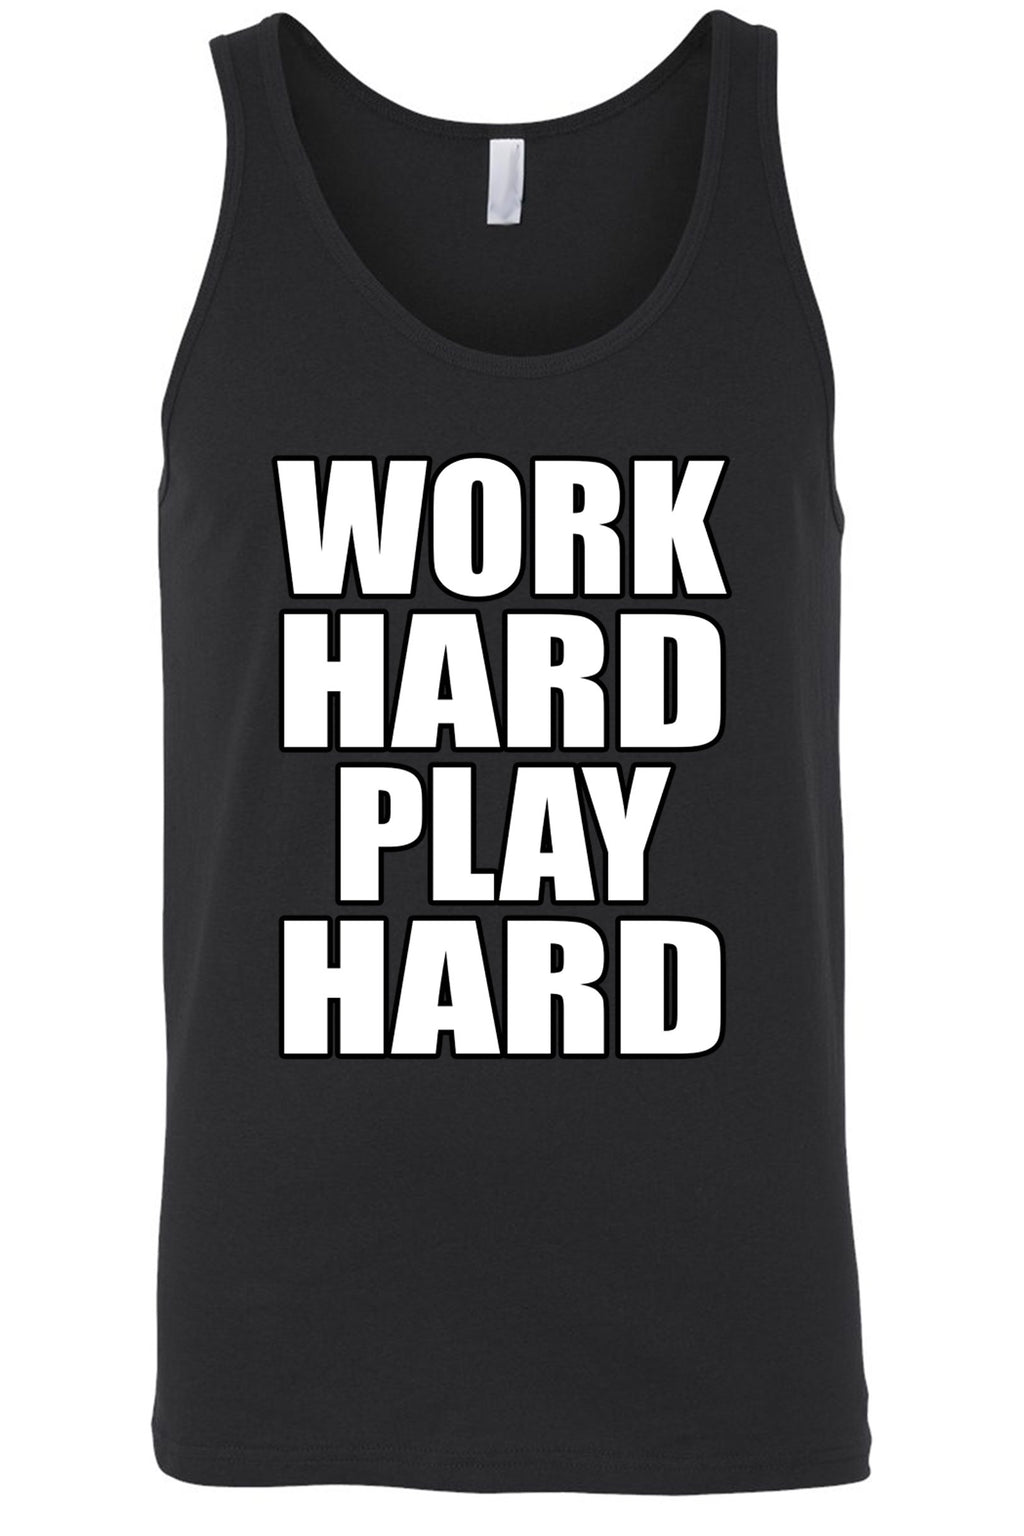 Men's Work Hard Play Hard Tank Top Shirt